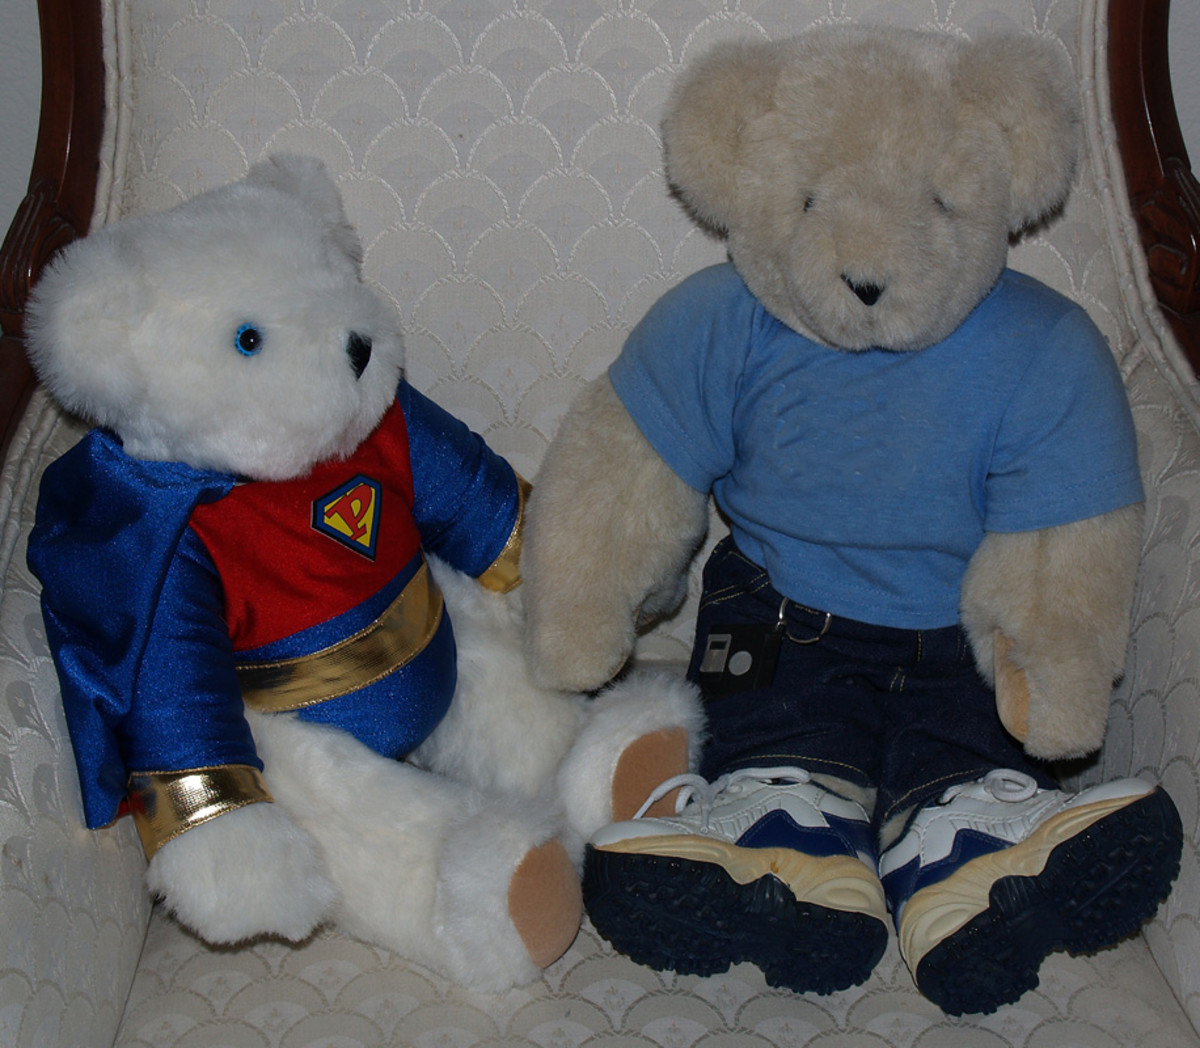 Two of the Vermont Teddy Bears in the author's collection.